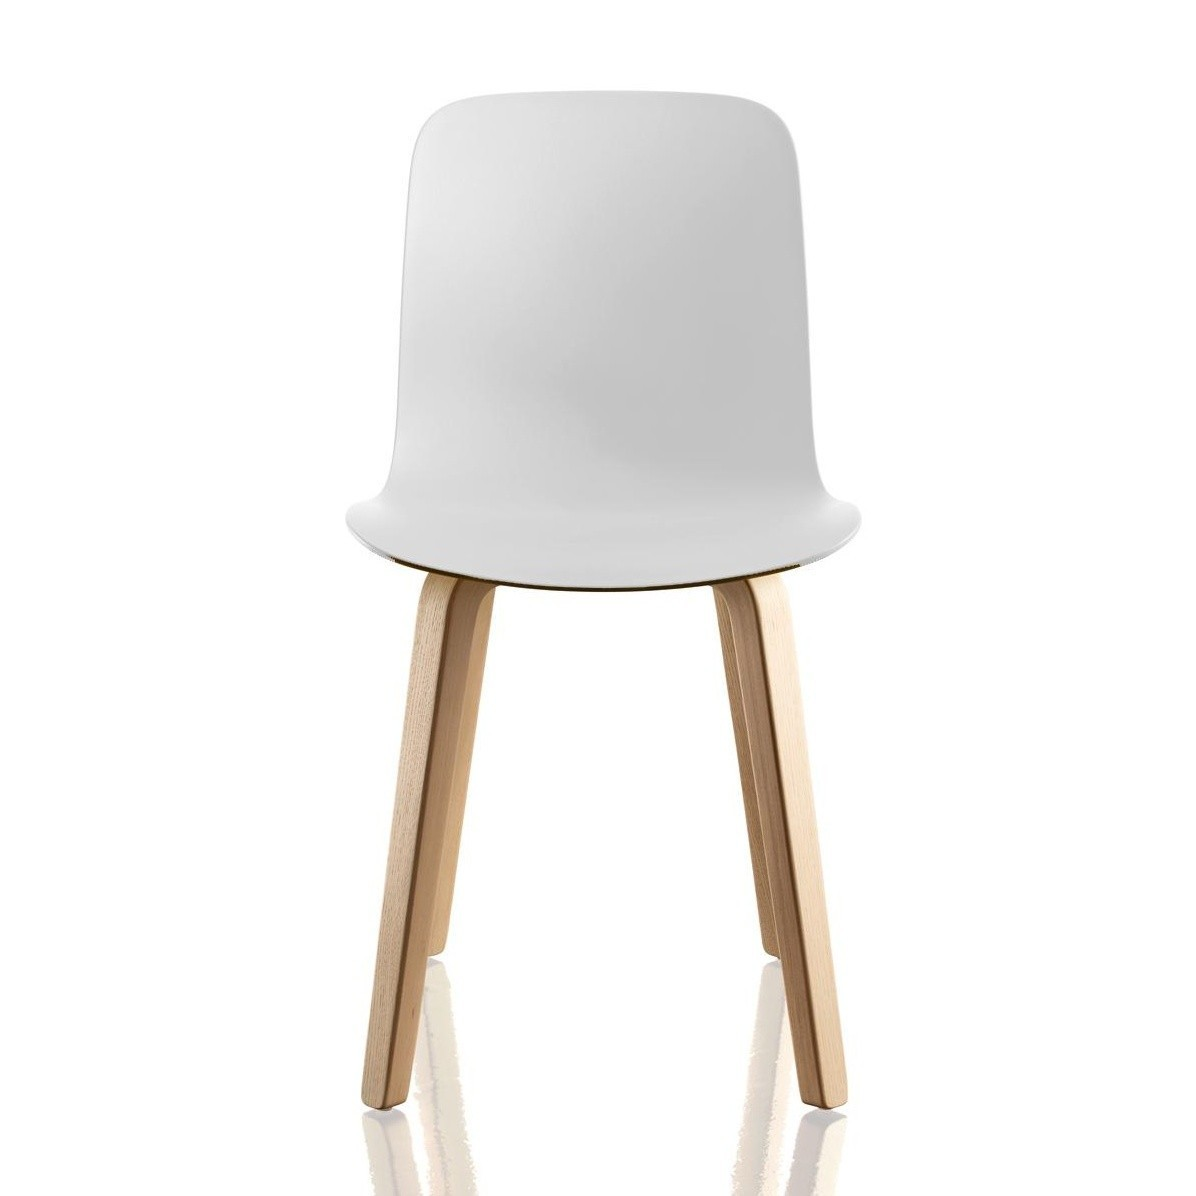 Substance Dining Chair - Set of 2 Natural Frame, White Seat, Ash Plywood